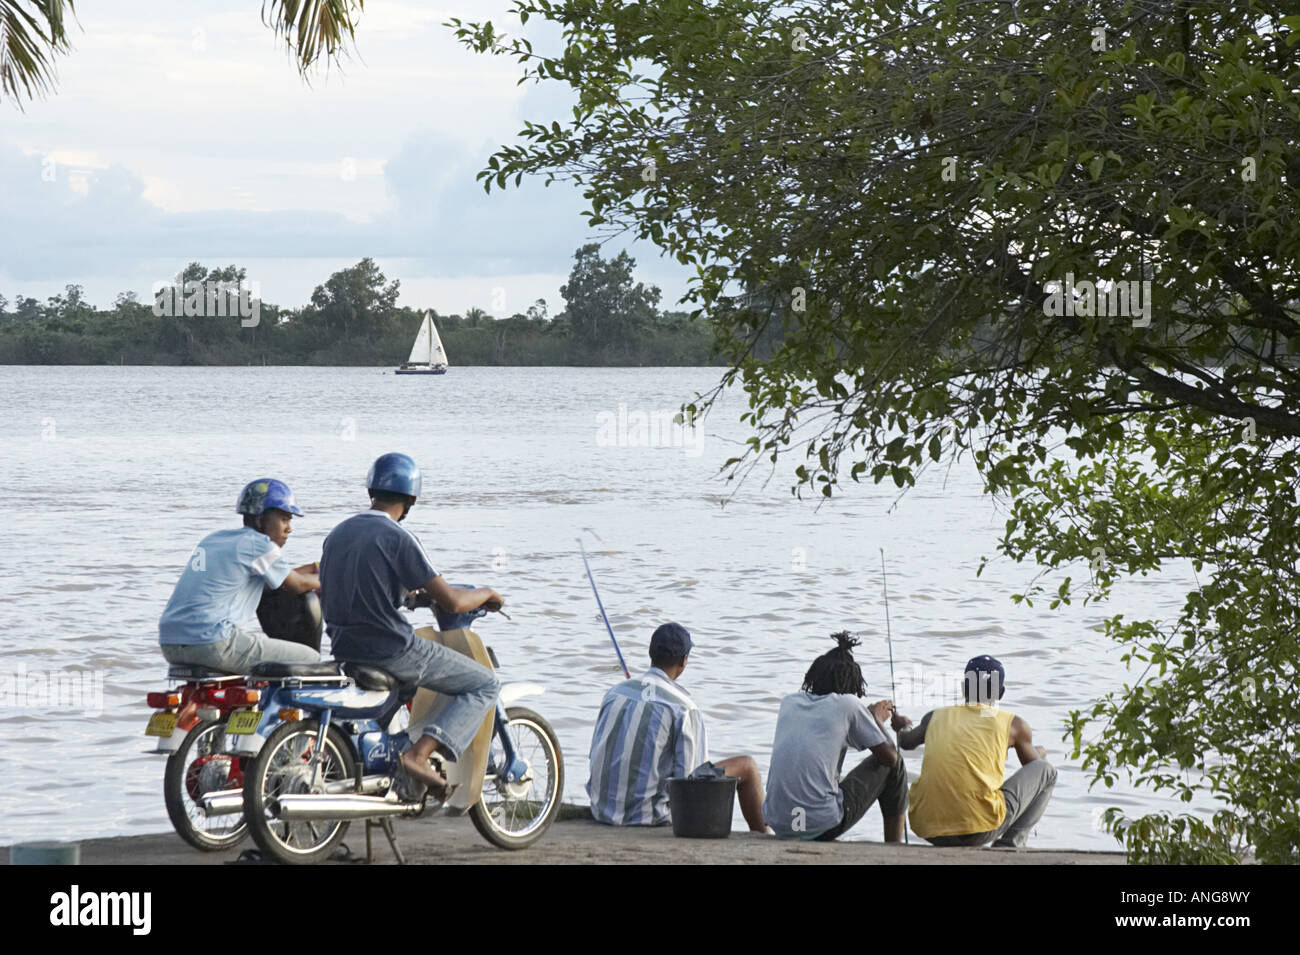 Local residents of mixed descent African and Javanese on the shore of the Suriname River - Stock Image